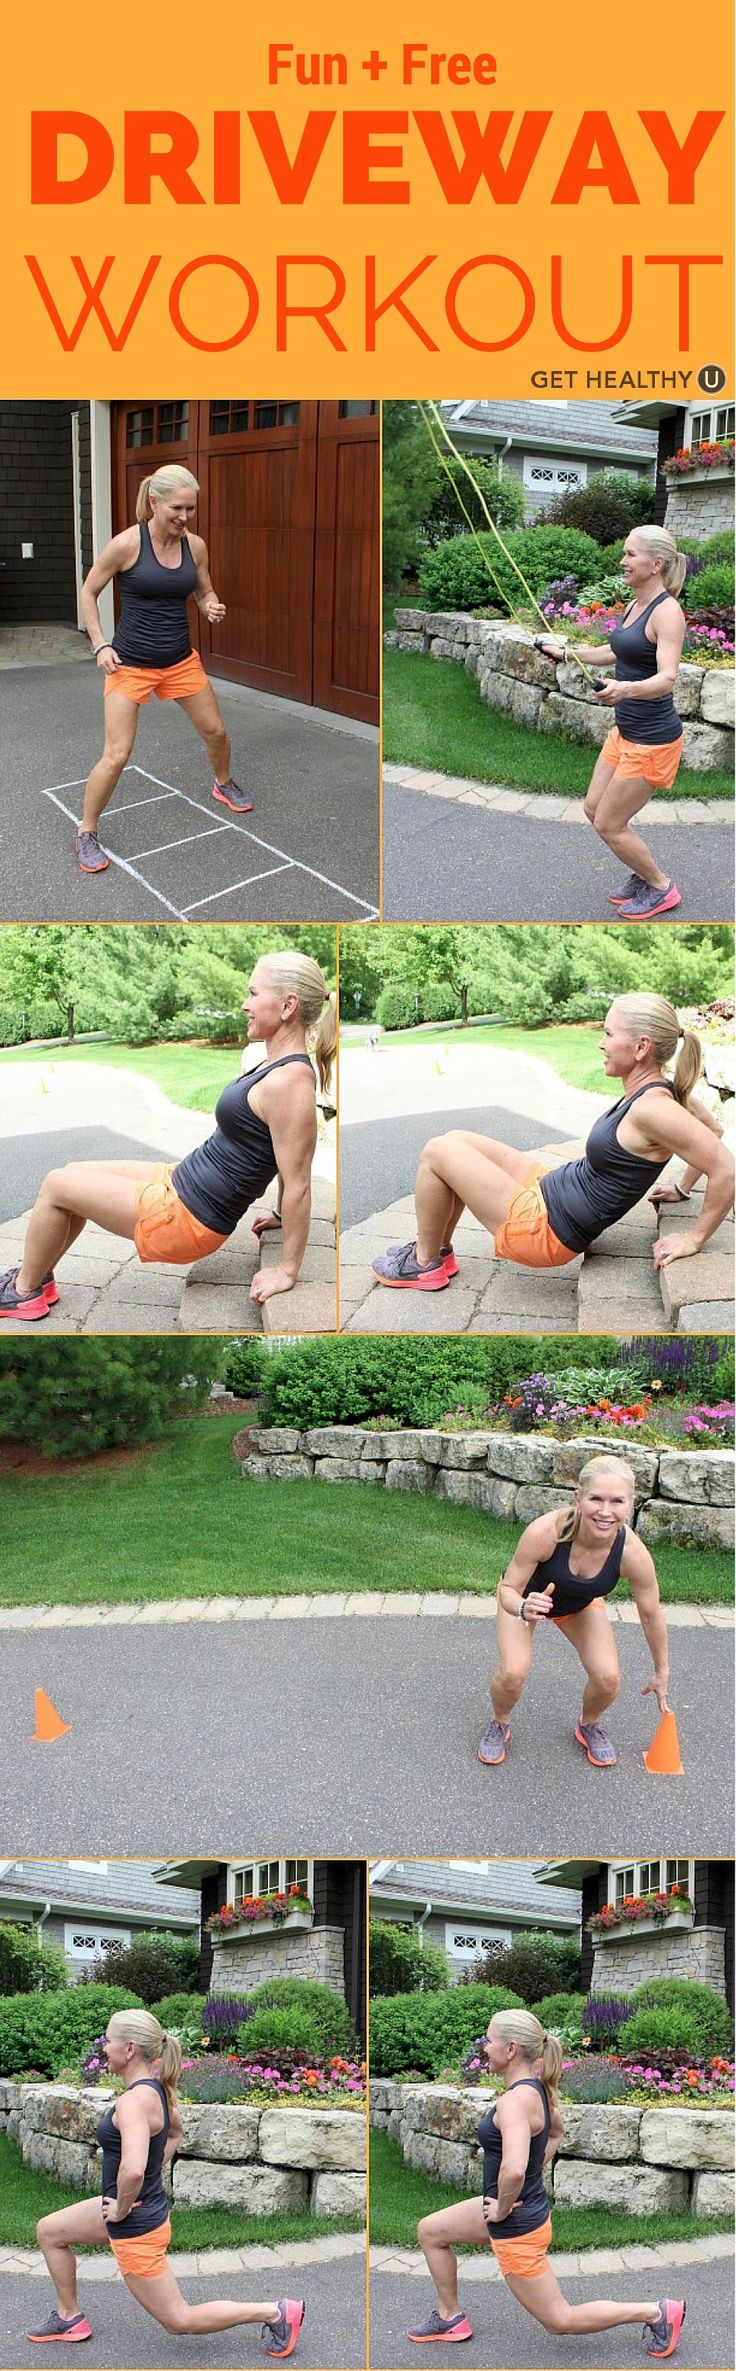 Fun and Free Driveway Workout - Get Healthy U | Workout ...